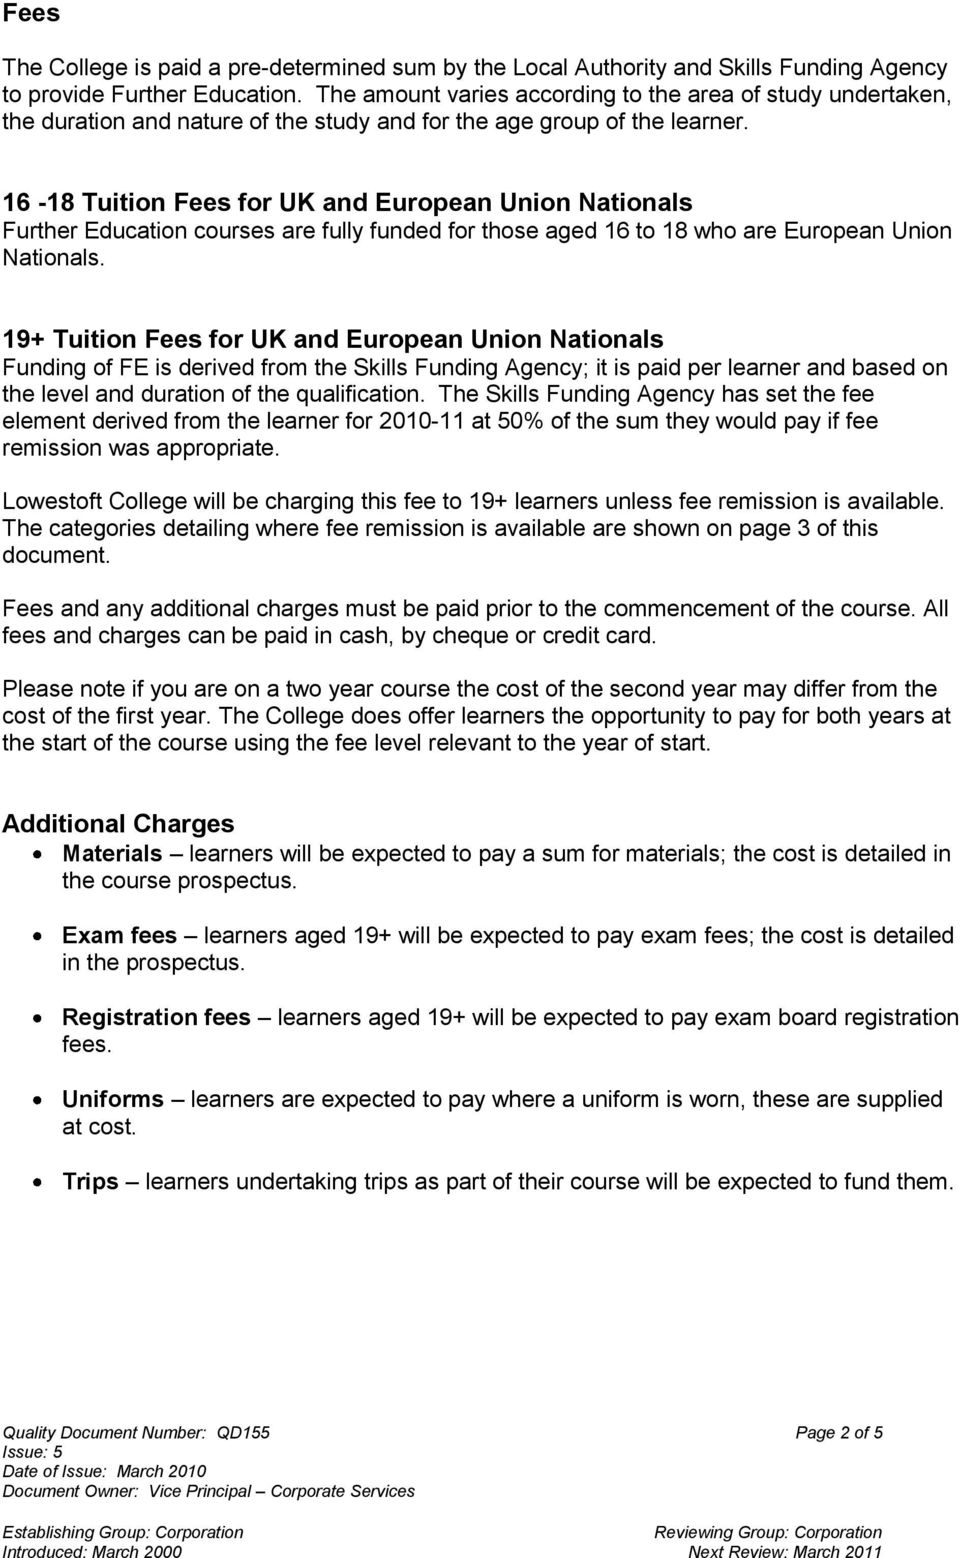 16-18 Tuition Fees for UK and European Union Nationals Further Education courses are fully funded for those aged 16 to 18 who are European Union Nationals.